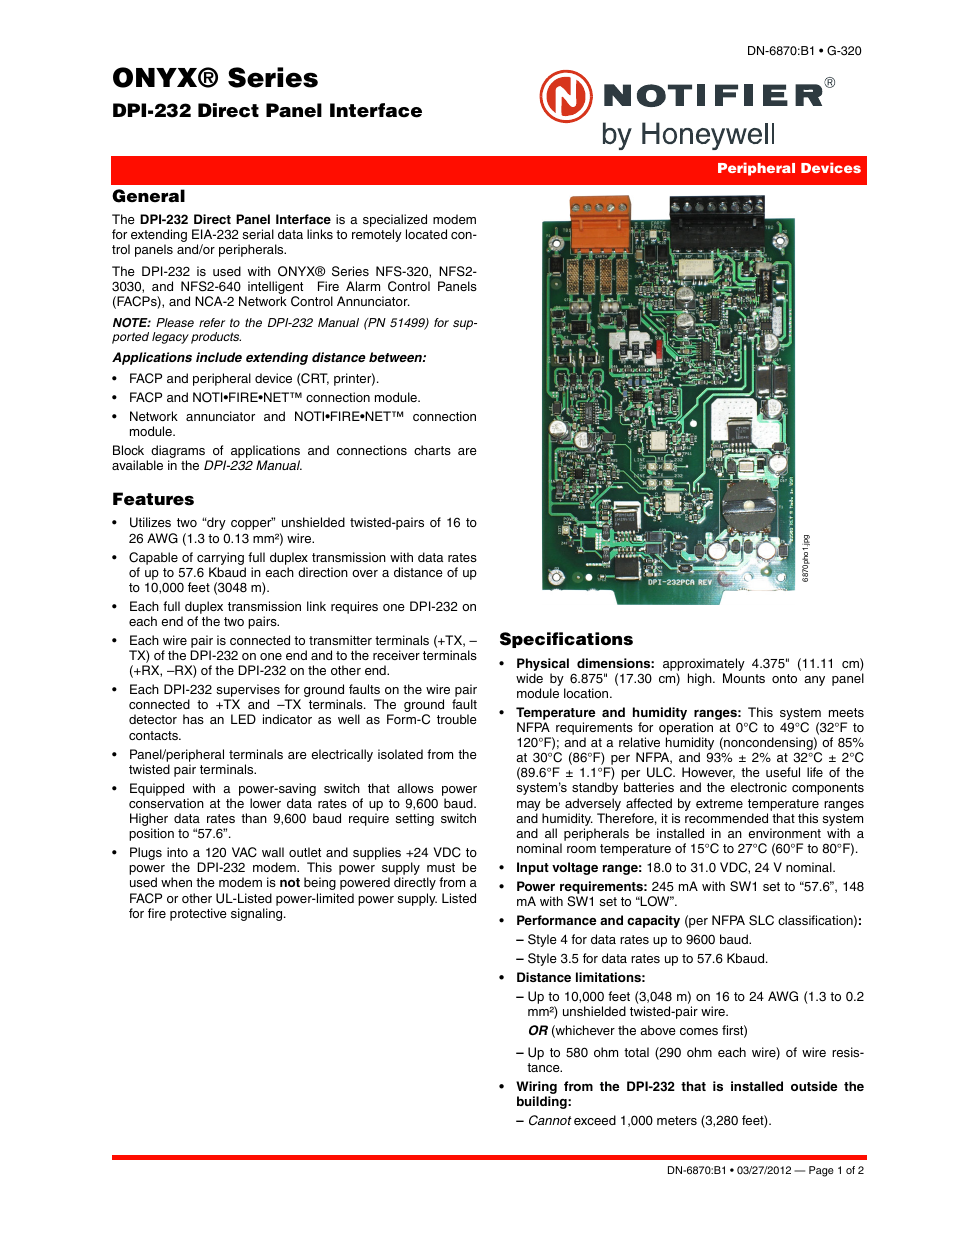 Notifier DPI-232 User Manual | 2 pages